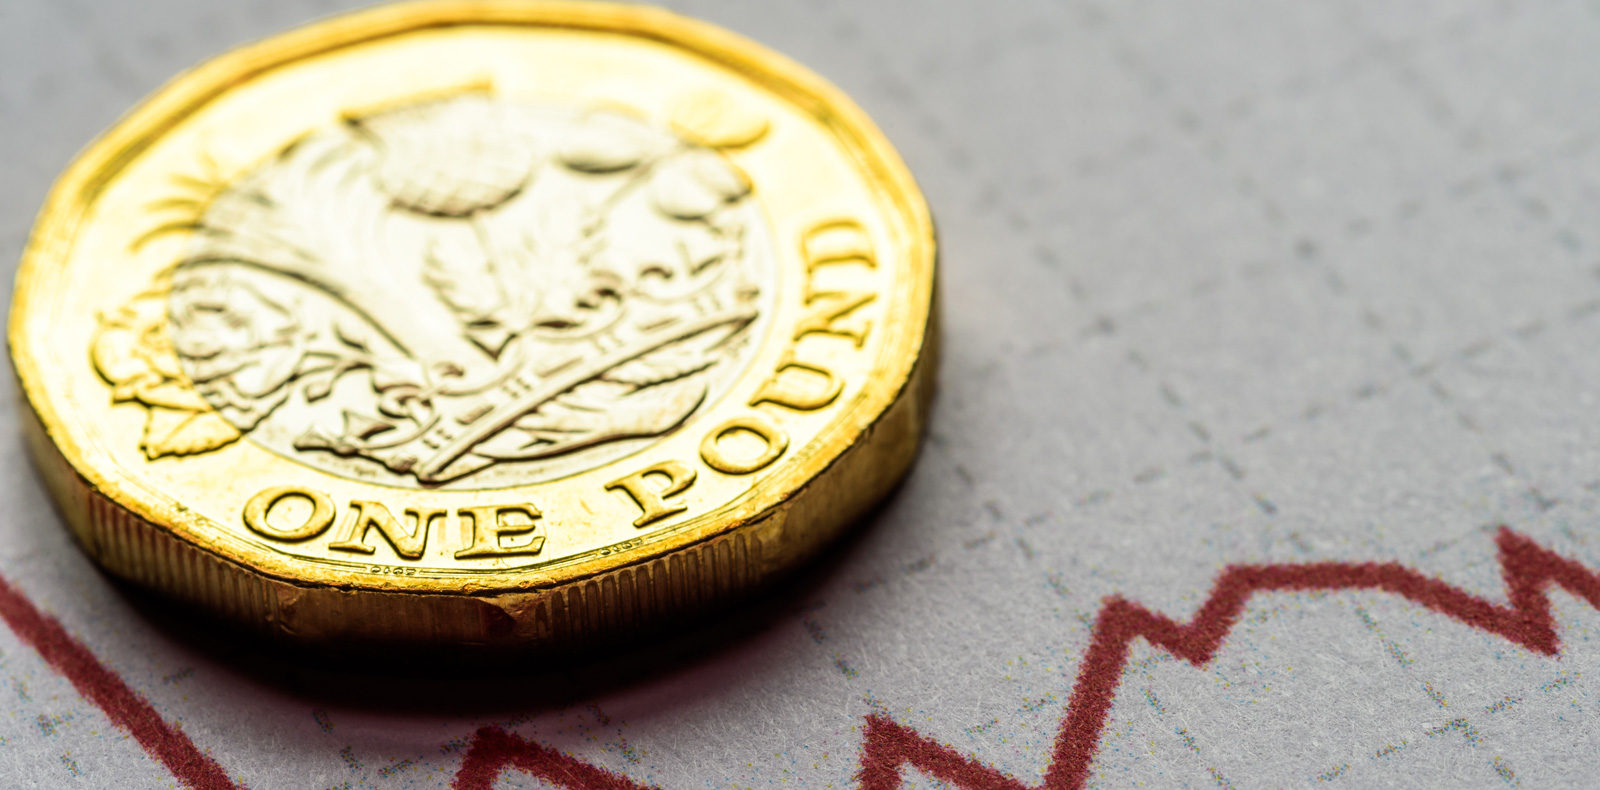 Due to an increase in the likelihood of a no-deal Brexit, the pound sterling suffered an approximate 4.5% loss against the euro.